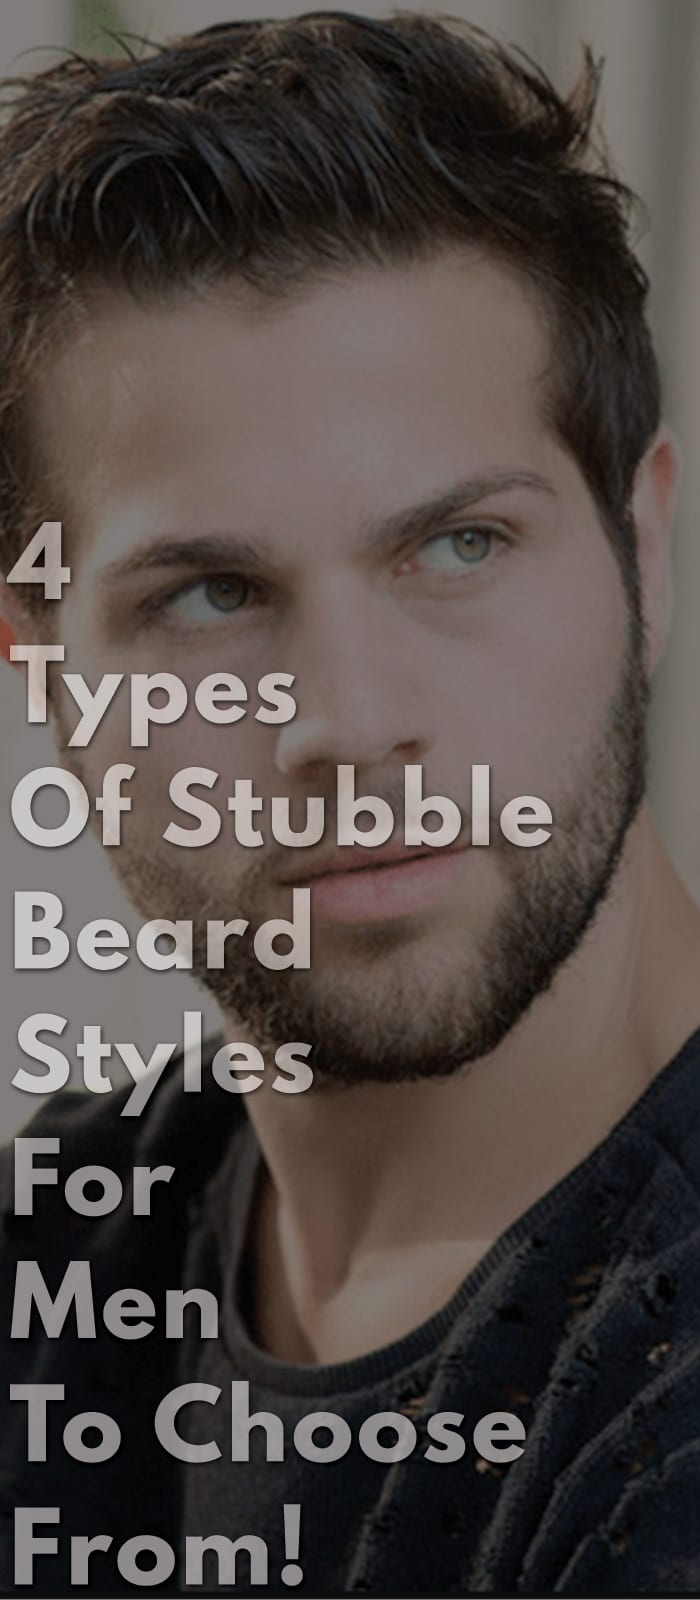 4-Types-Of-Stubble-Beard-Styles-For-Men-To-Choose-From!